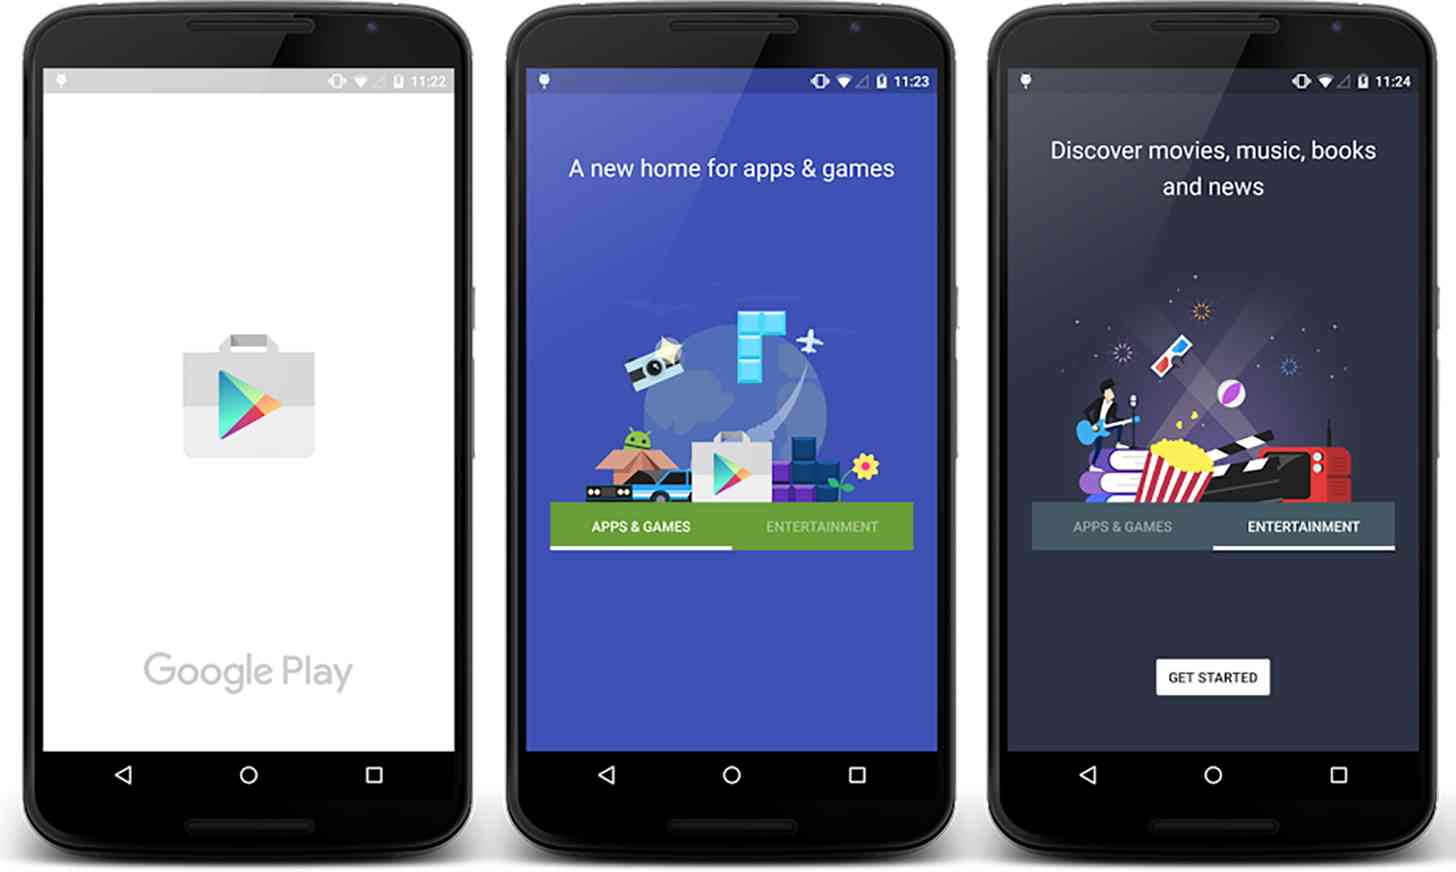 Google Play for Android redesign 1